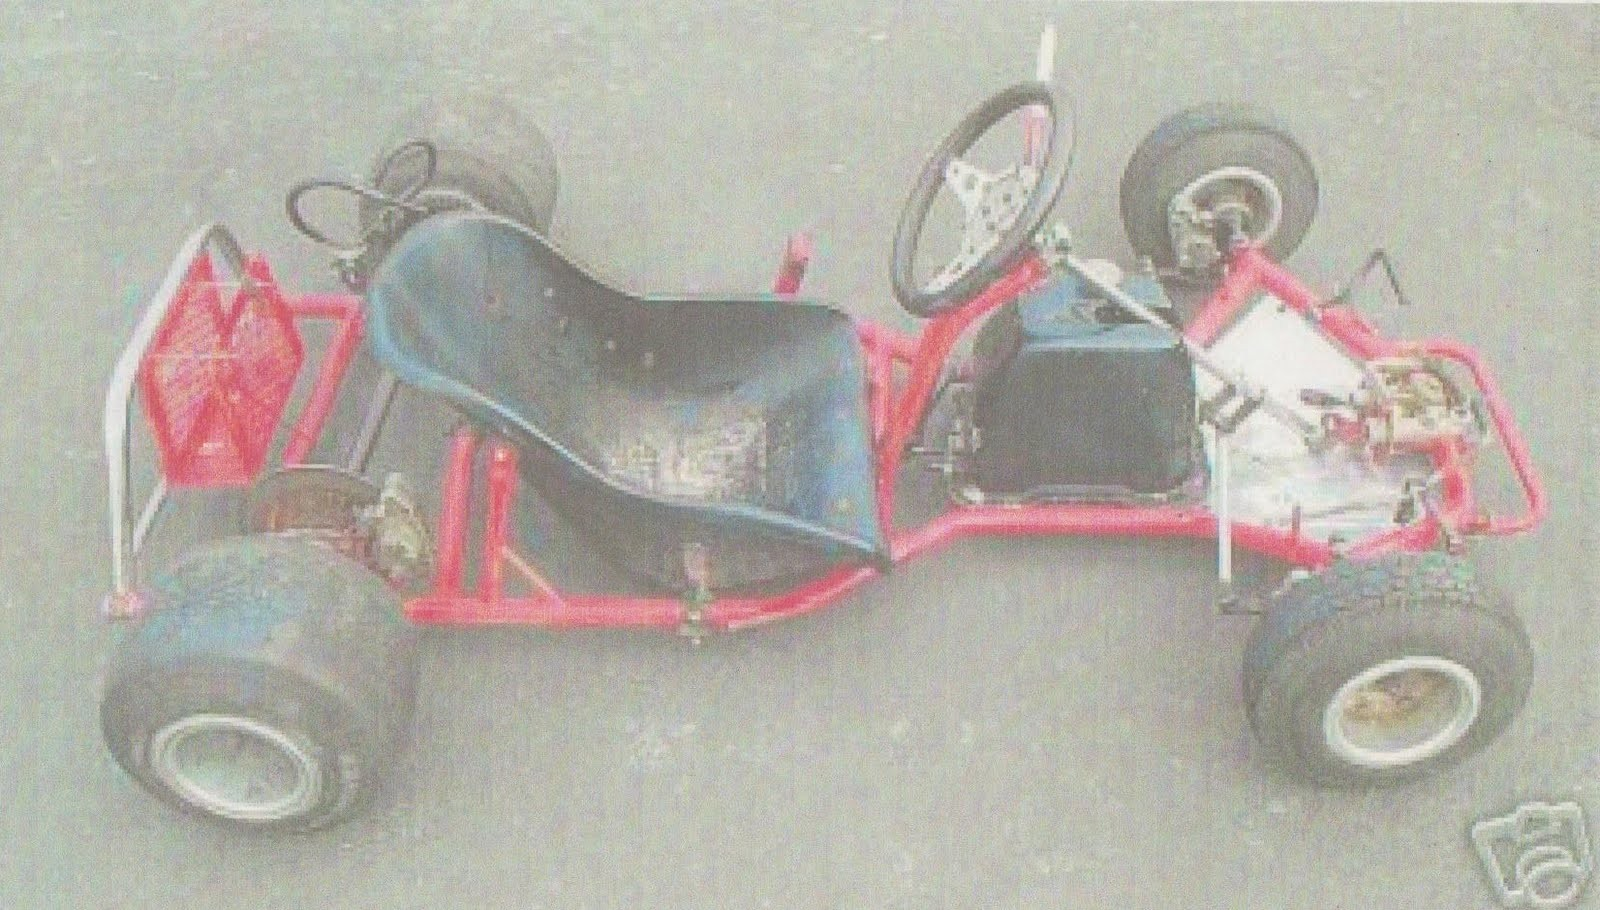 Star Gemini rolling chassis